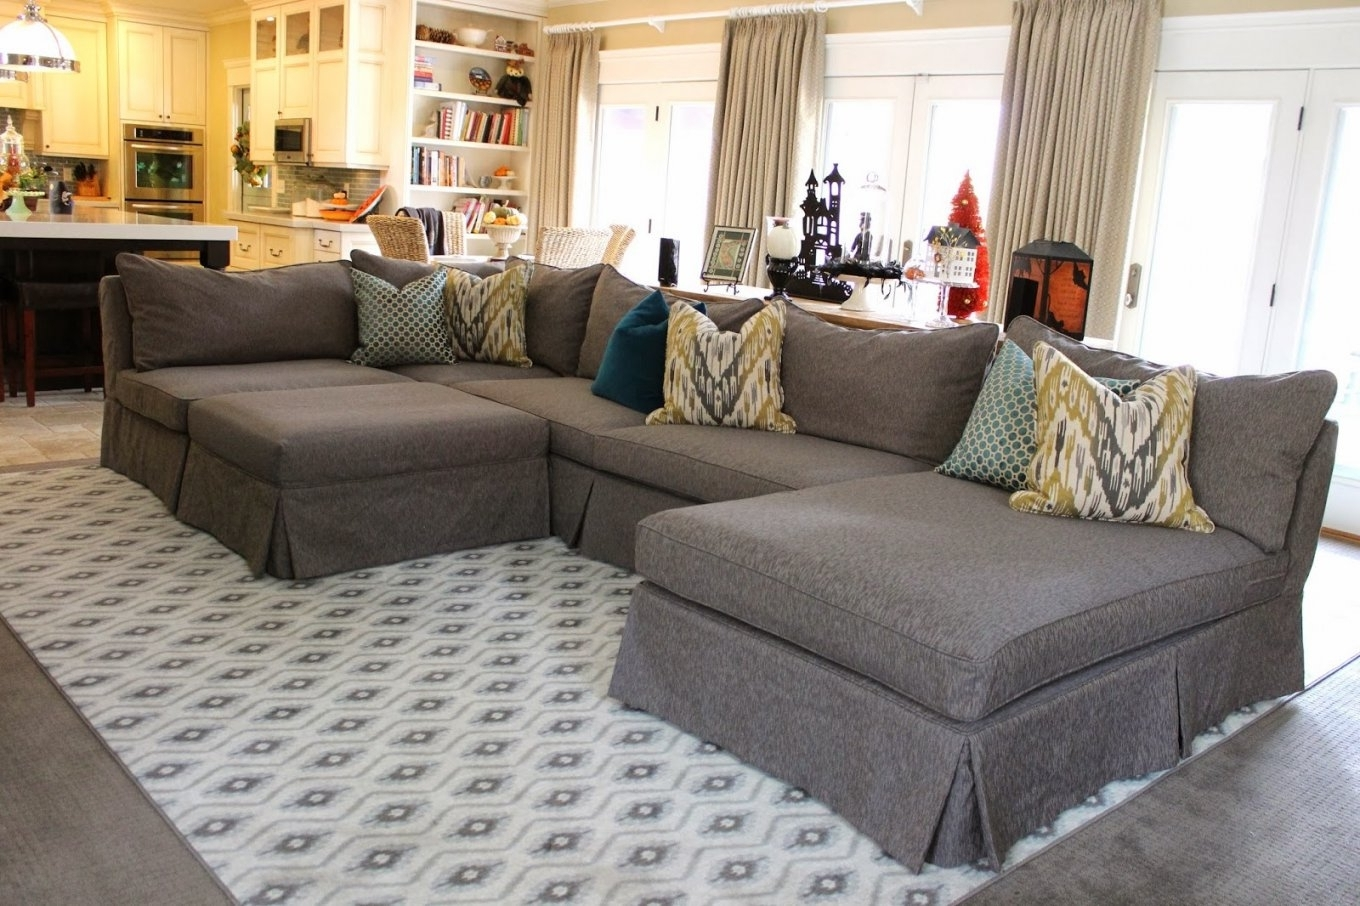 Sofa Set With White Cover Or Slipcover For Chaise Plus For Chaise Throughout Well Liked Slipcovers For Sectional Sofa With Chaise (View 9 of 15)